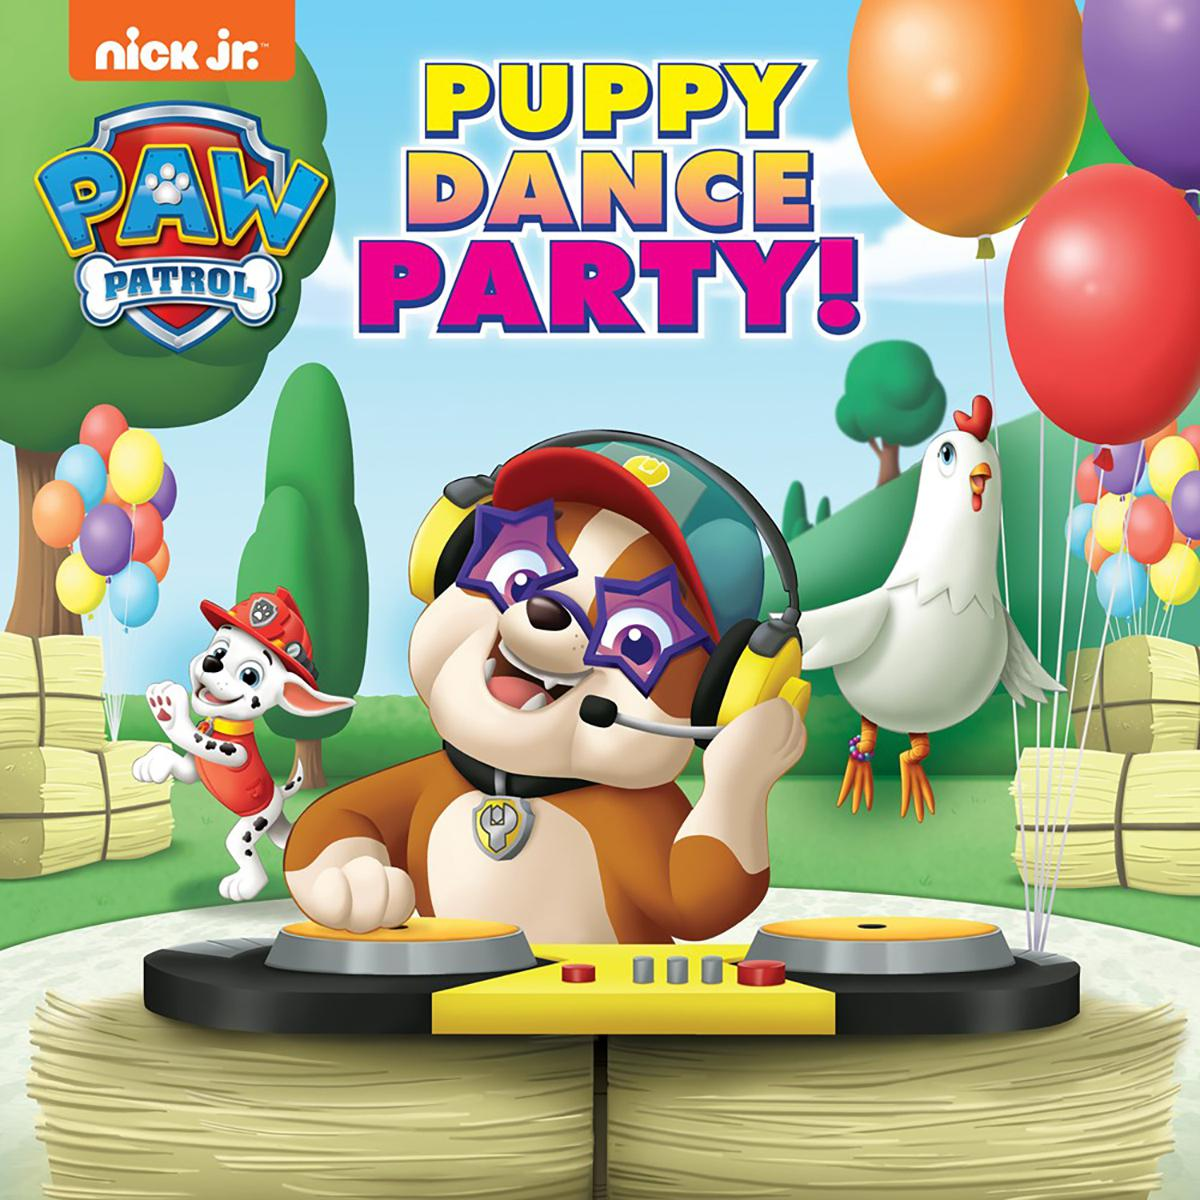 PAW Patrol: Puppy Dance Party!